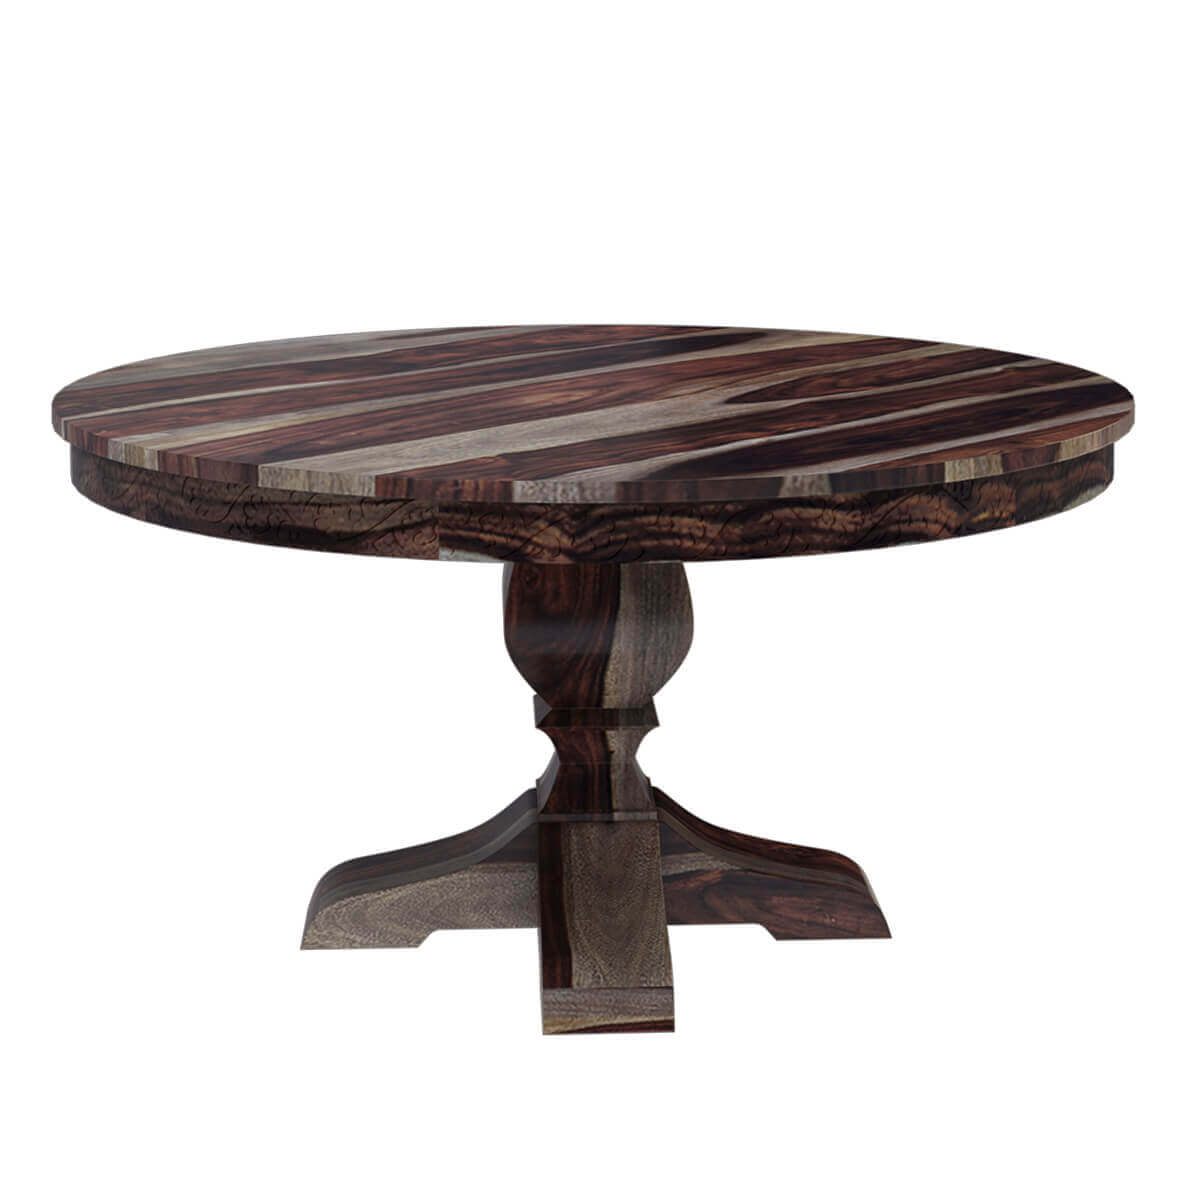 "Round Solid Wood Dining Table: Hosford Handcrafted Solid Wood 60"" Round Pedestal Dining Table"